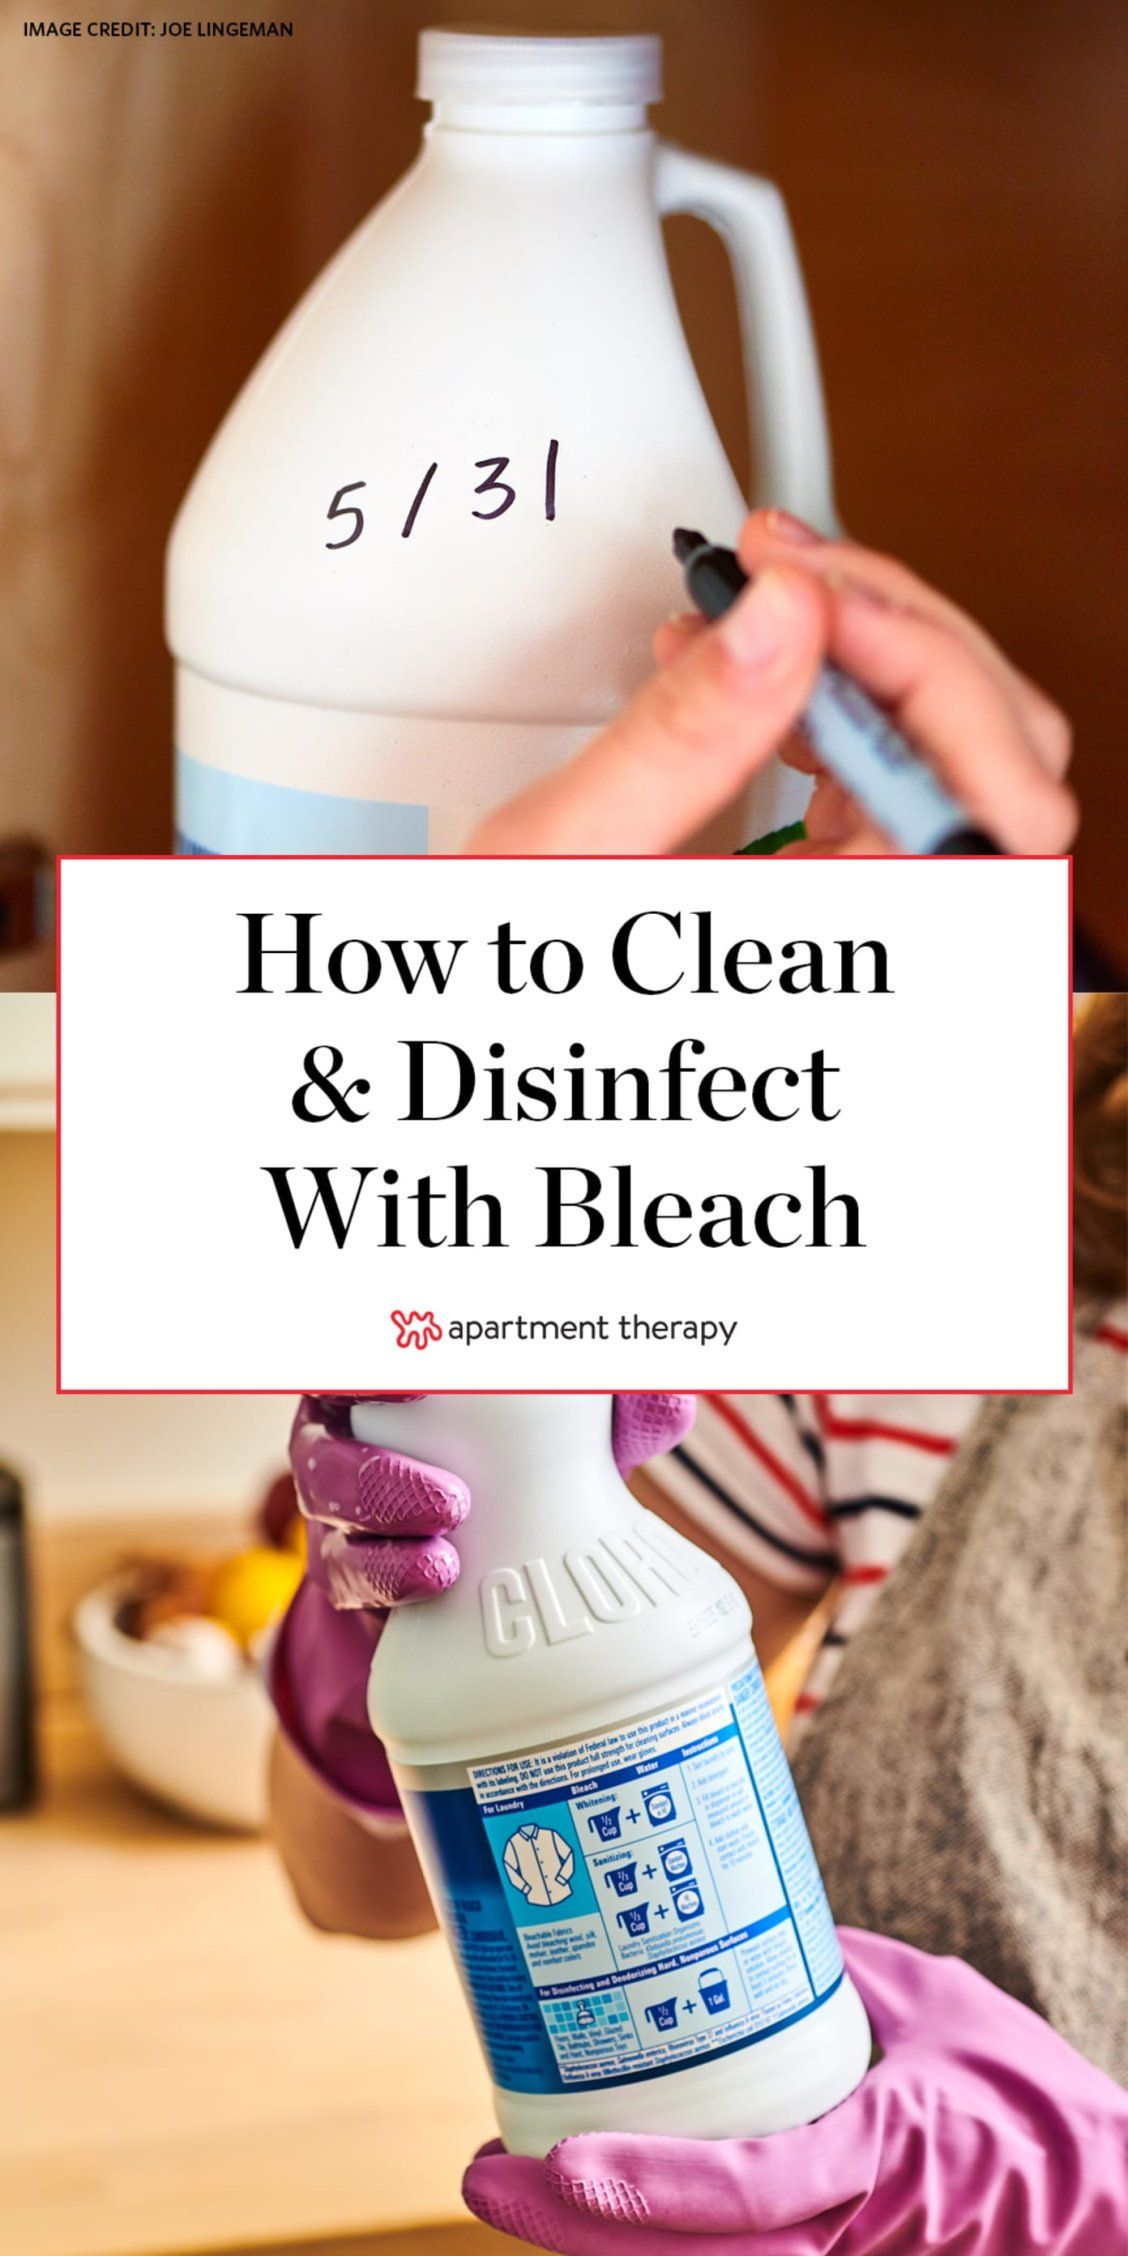 Everything You Ever Wanted to Know About Cleaning With